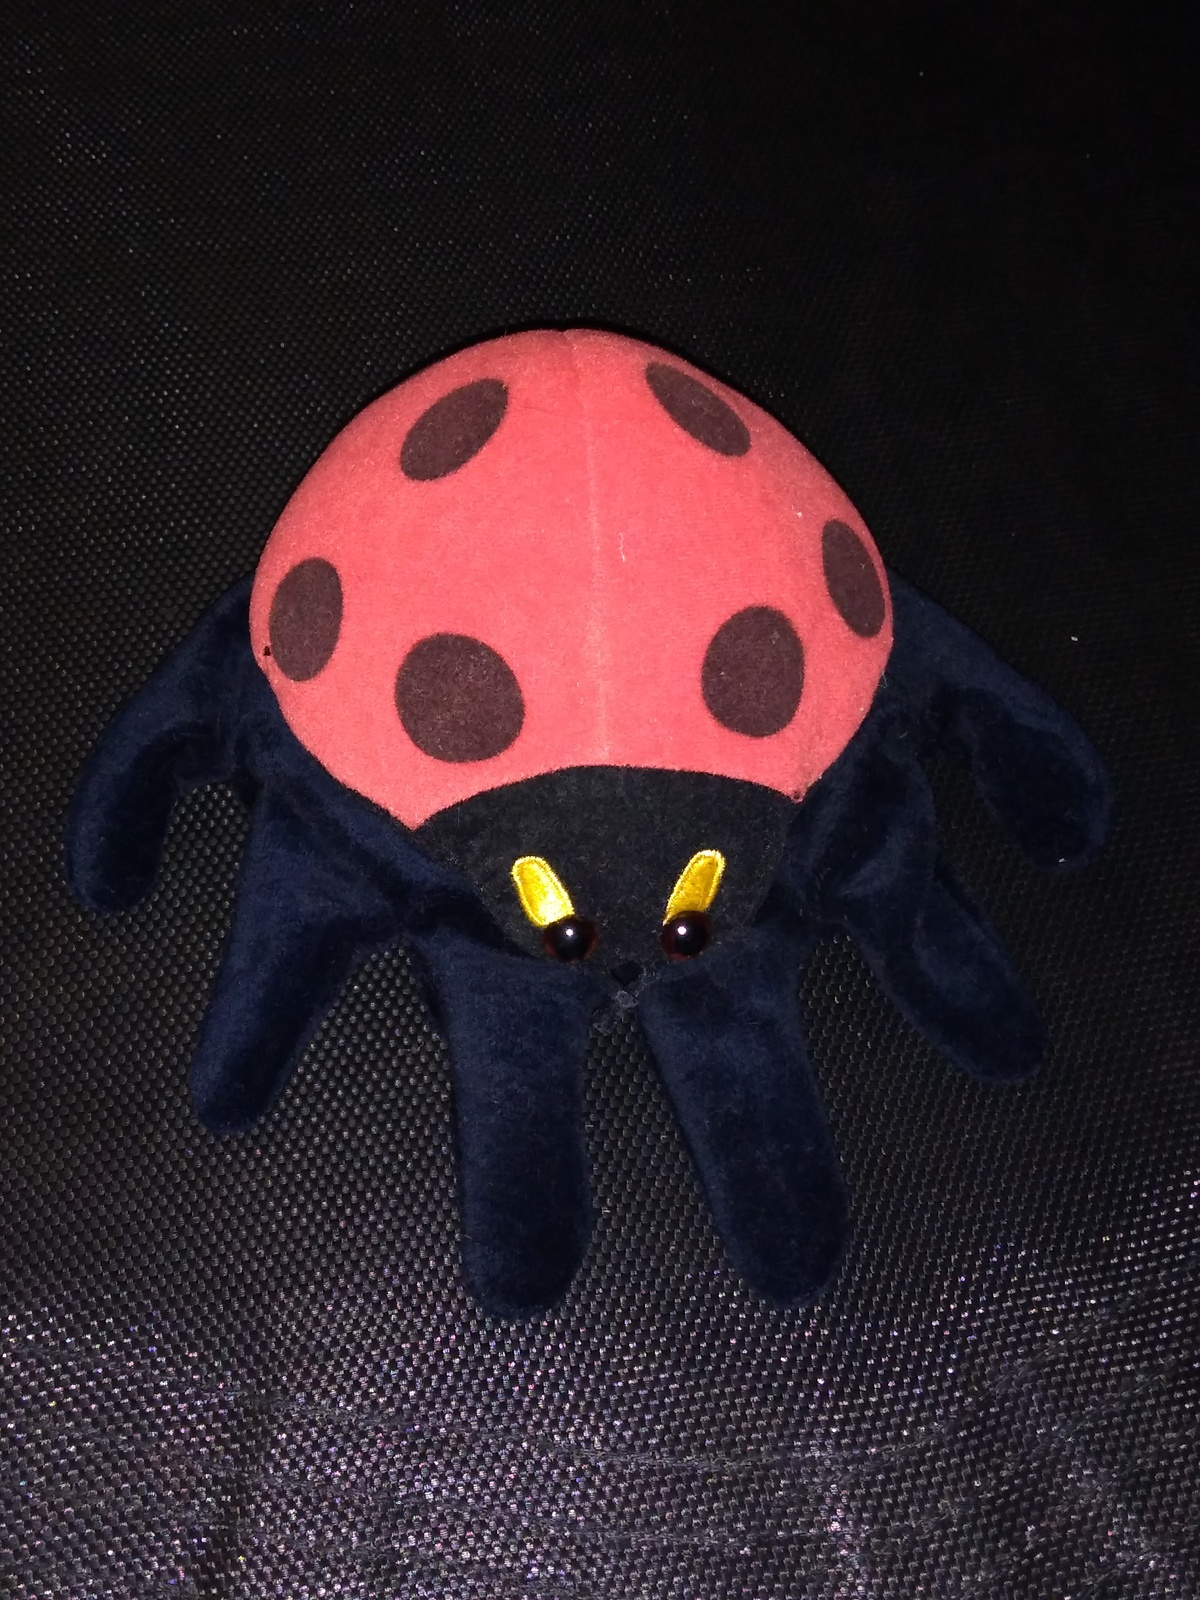 Primary image for Folkmanis 5 inch plush ladybug